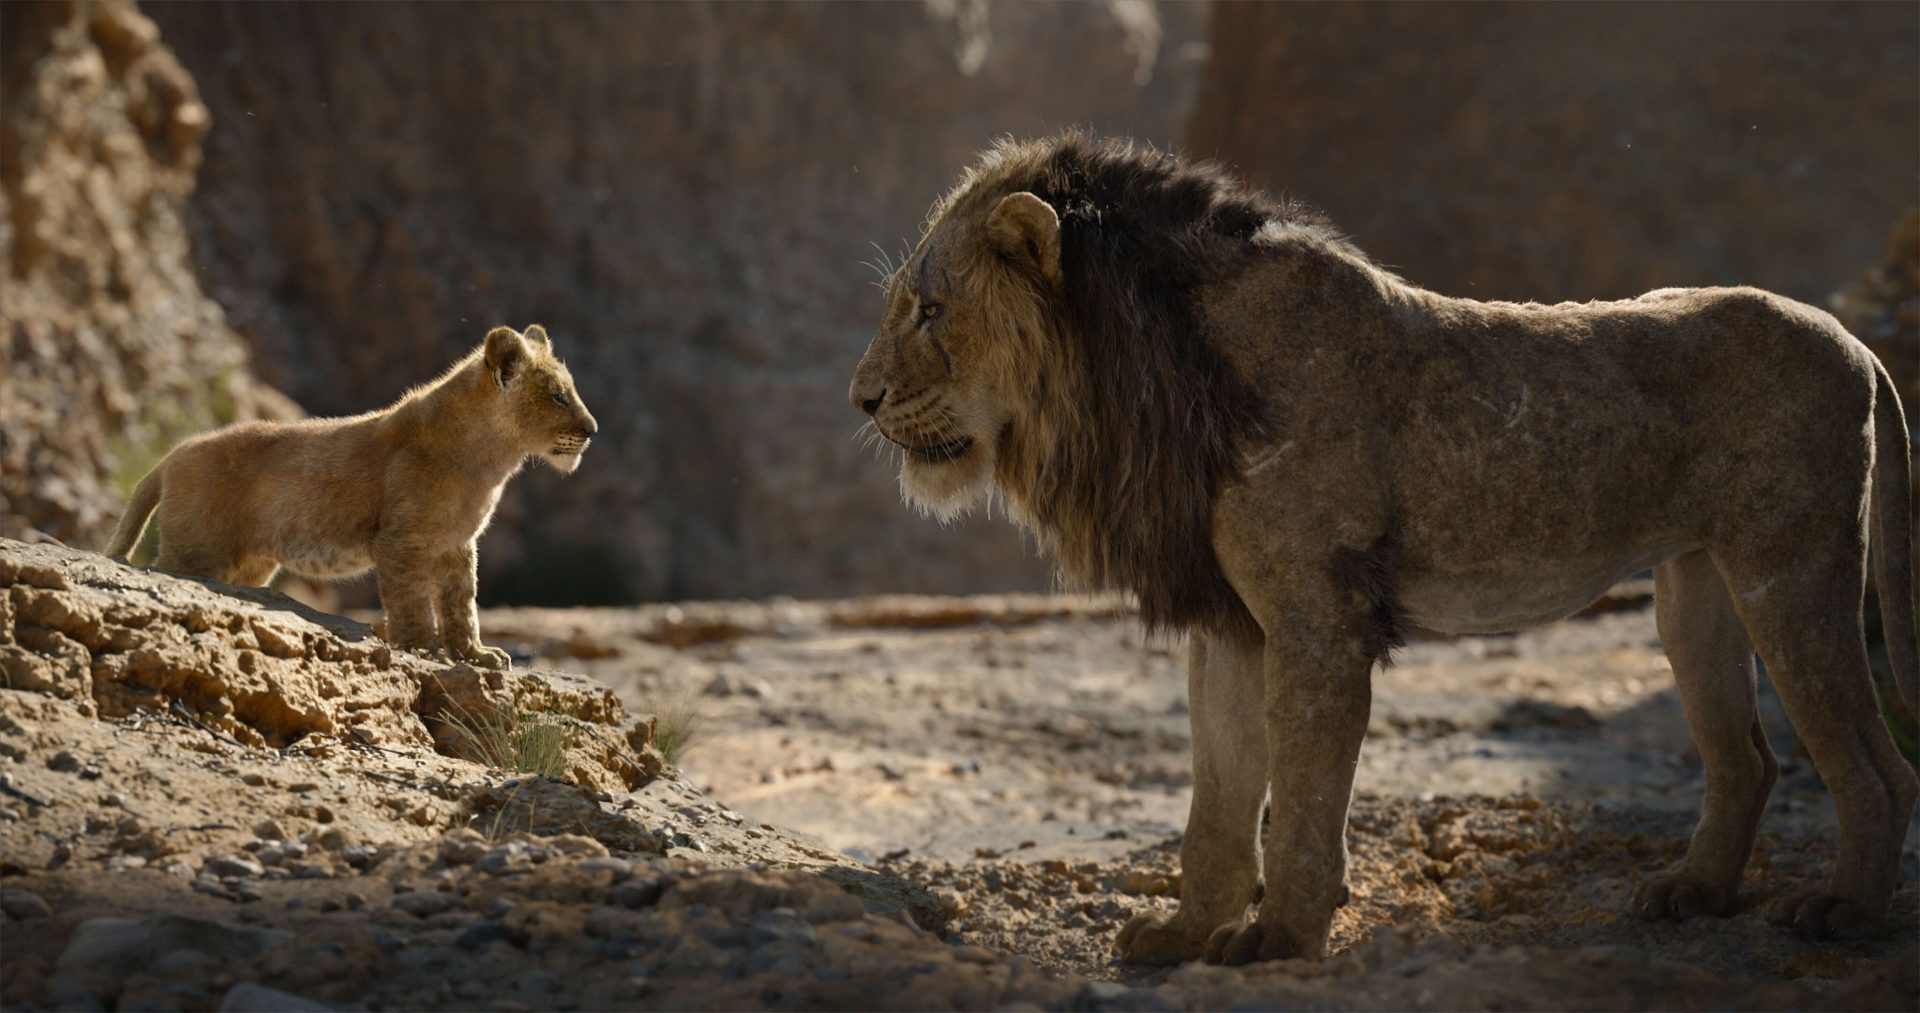 The Lion King 2019 Review Emotional Range Takes A Backseat